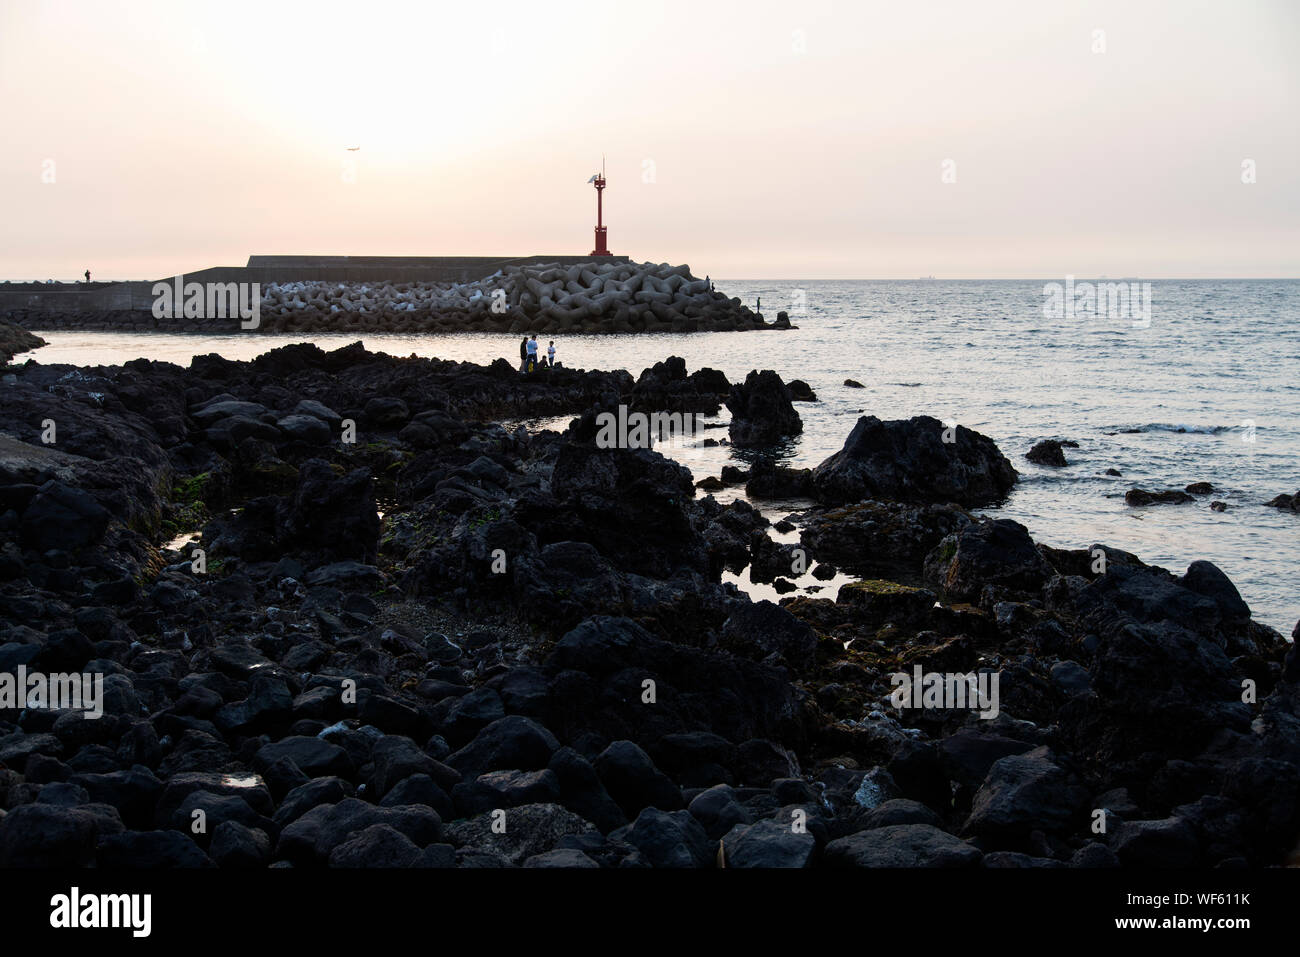 Rocky Shore Against Sky During Sunset - Stock Photo